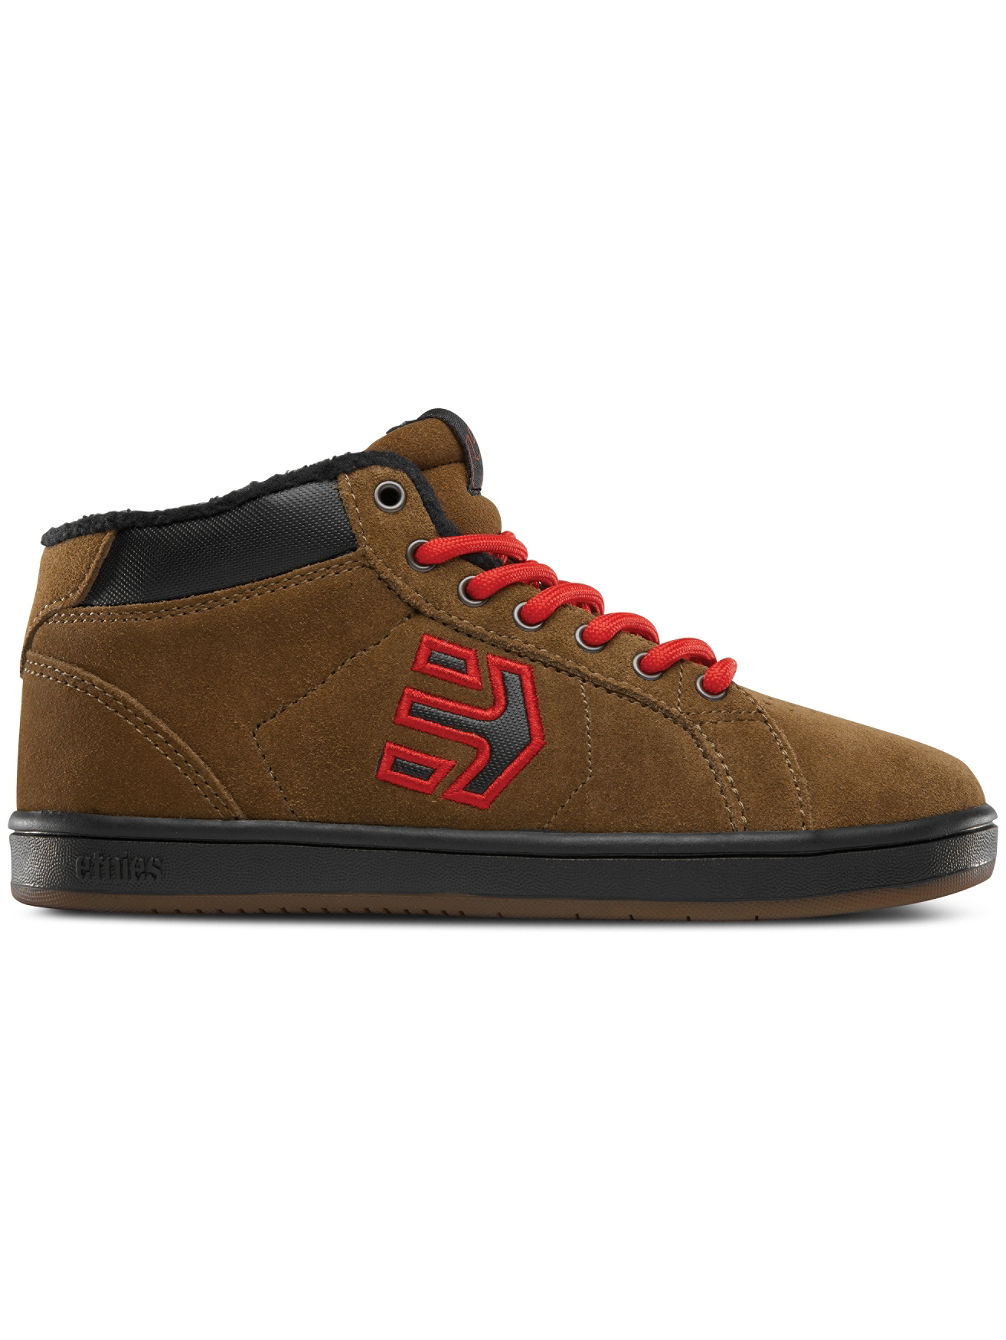 Fader Mt Sneakers Boys